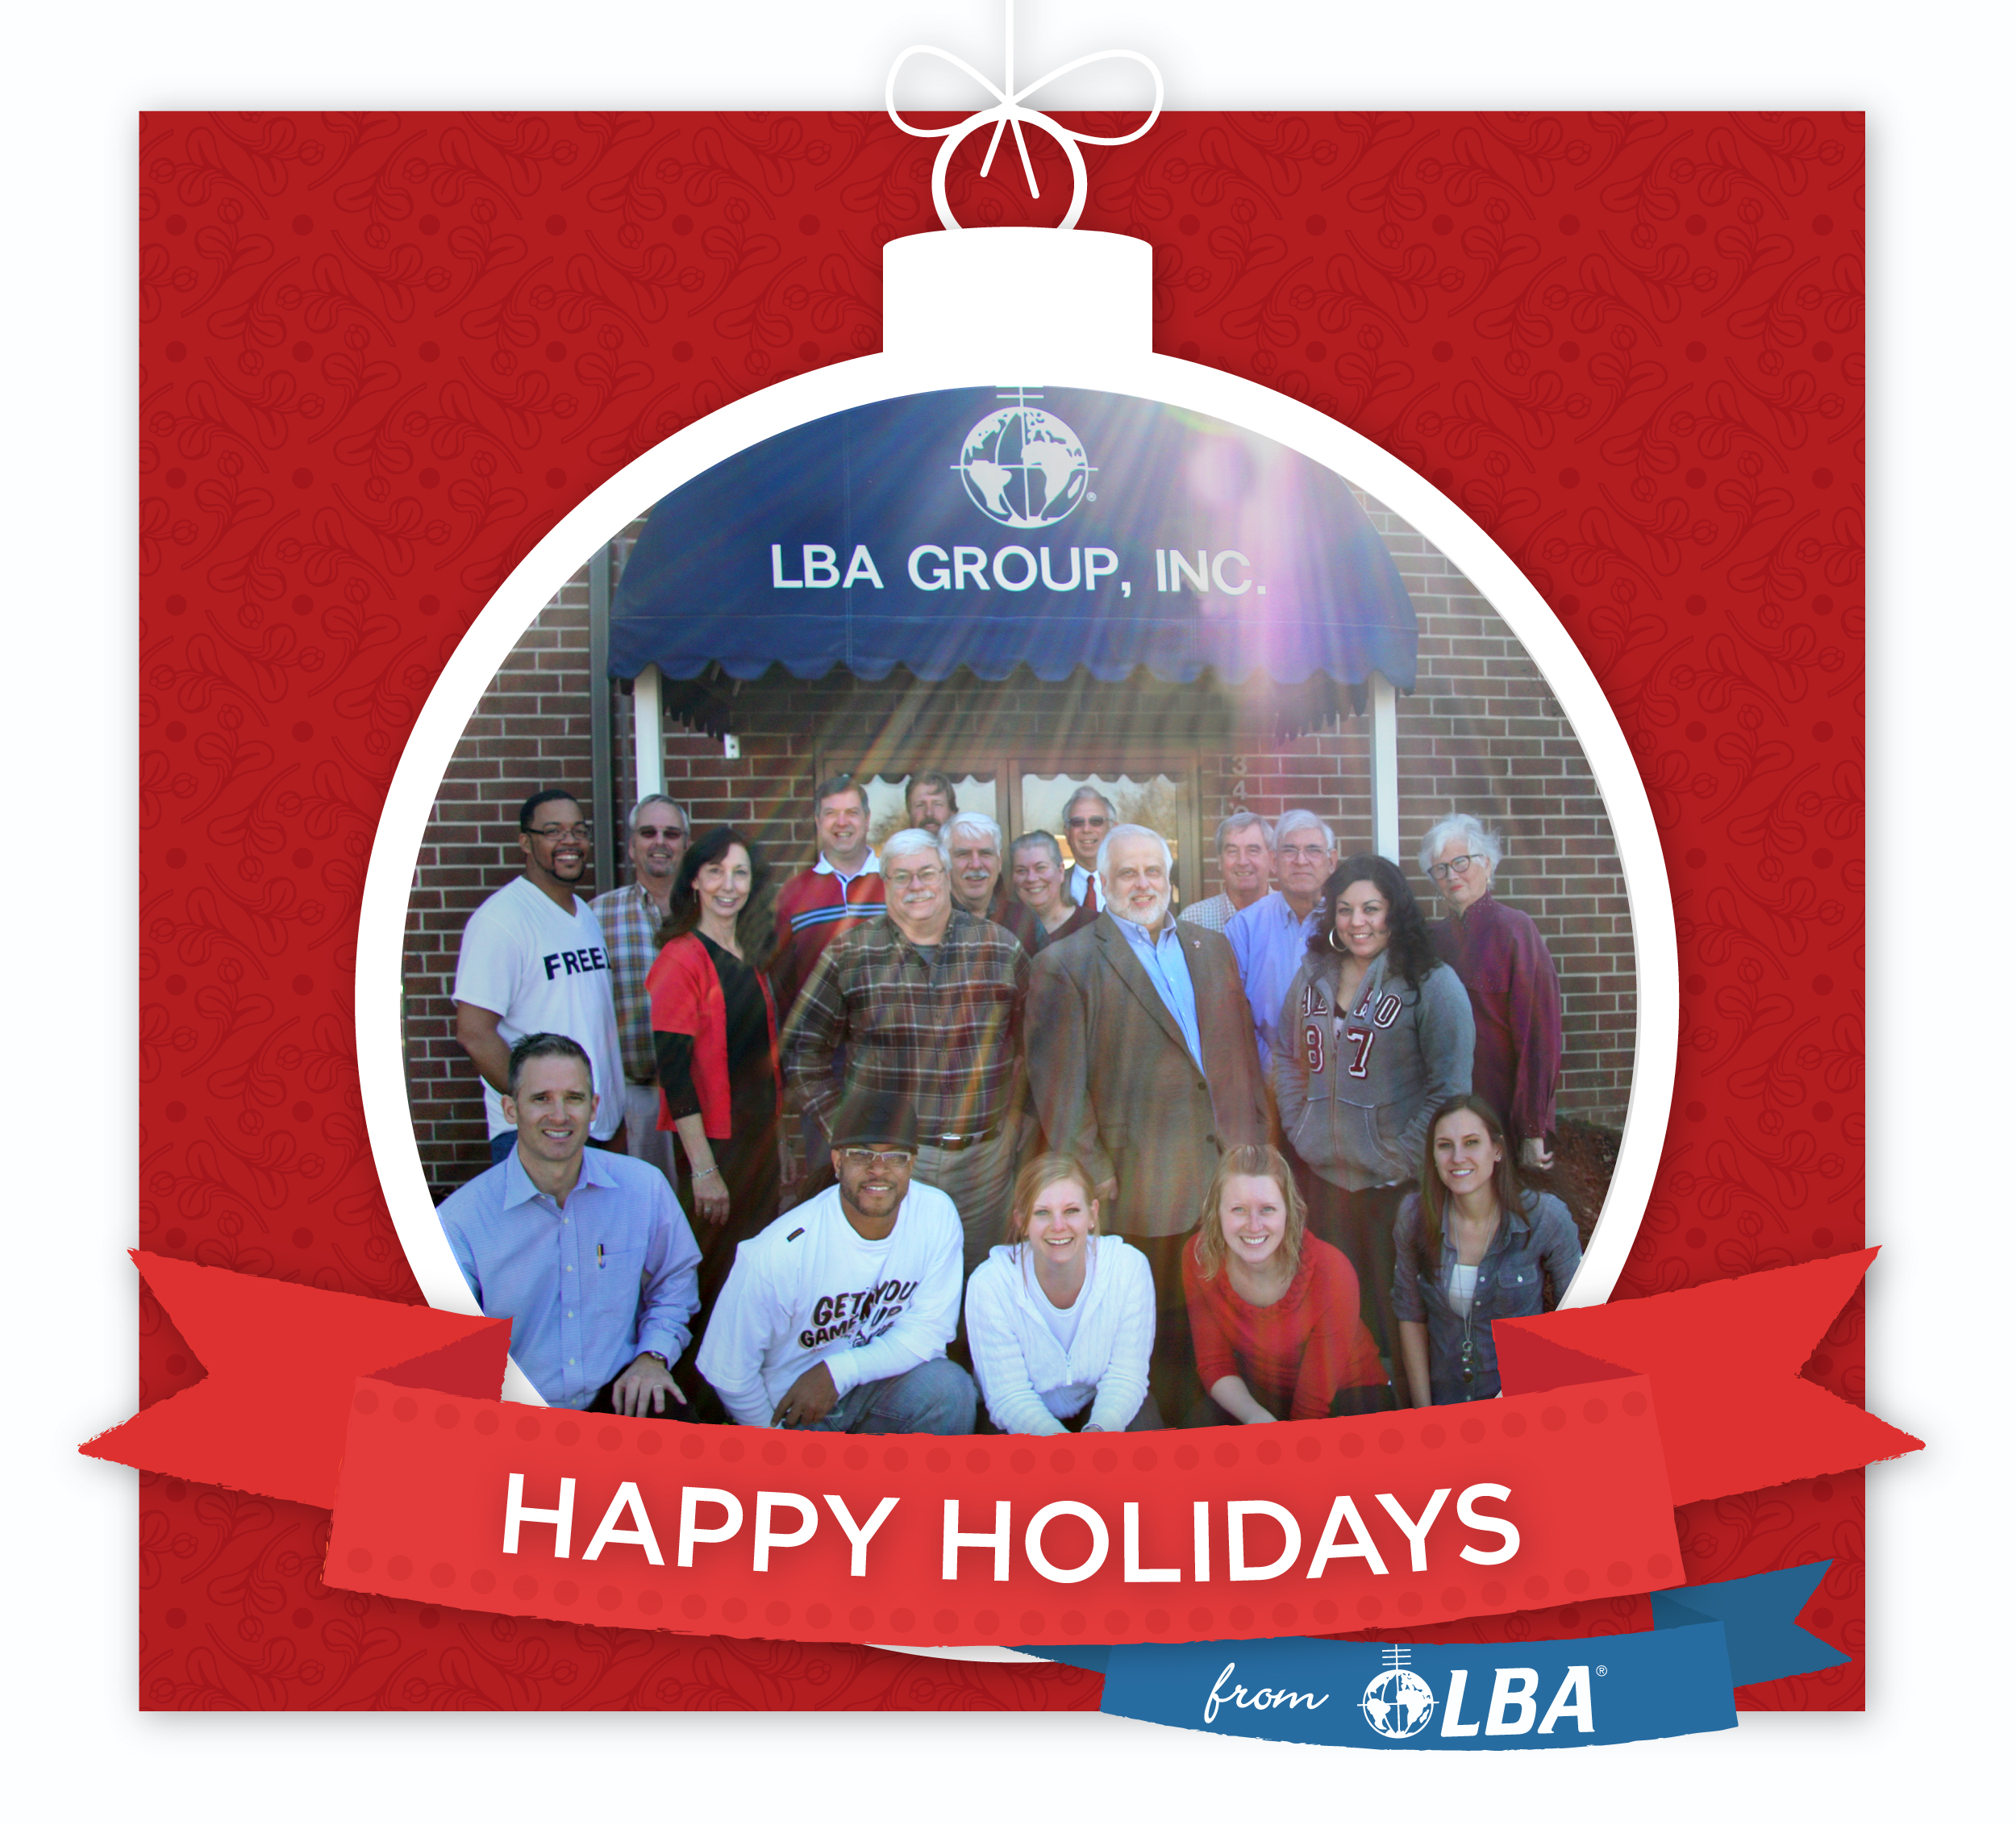 Lawrence Behr Associate, LBA Technology & LBA University staff wishes you a Happy Holidays!